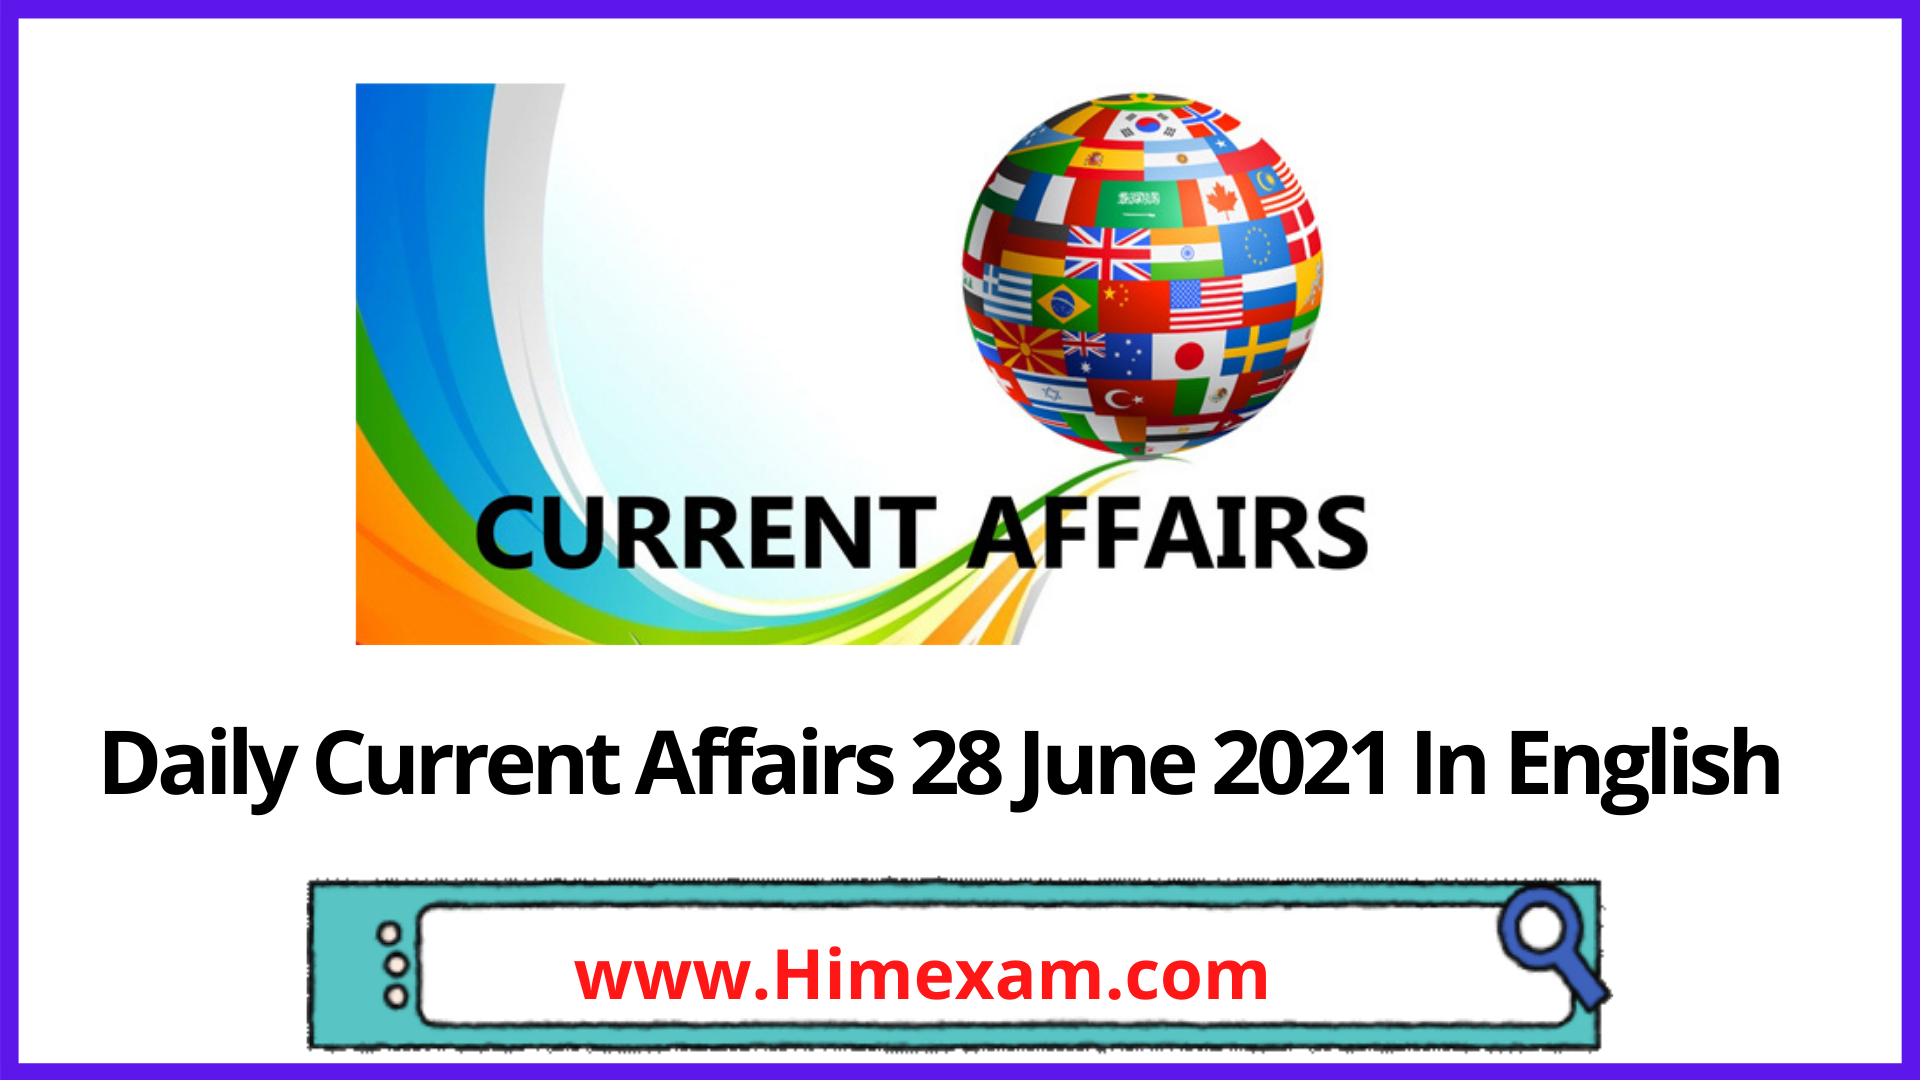 Daily Current Affairs 28 June 2021 In English